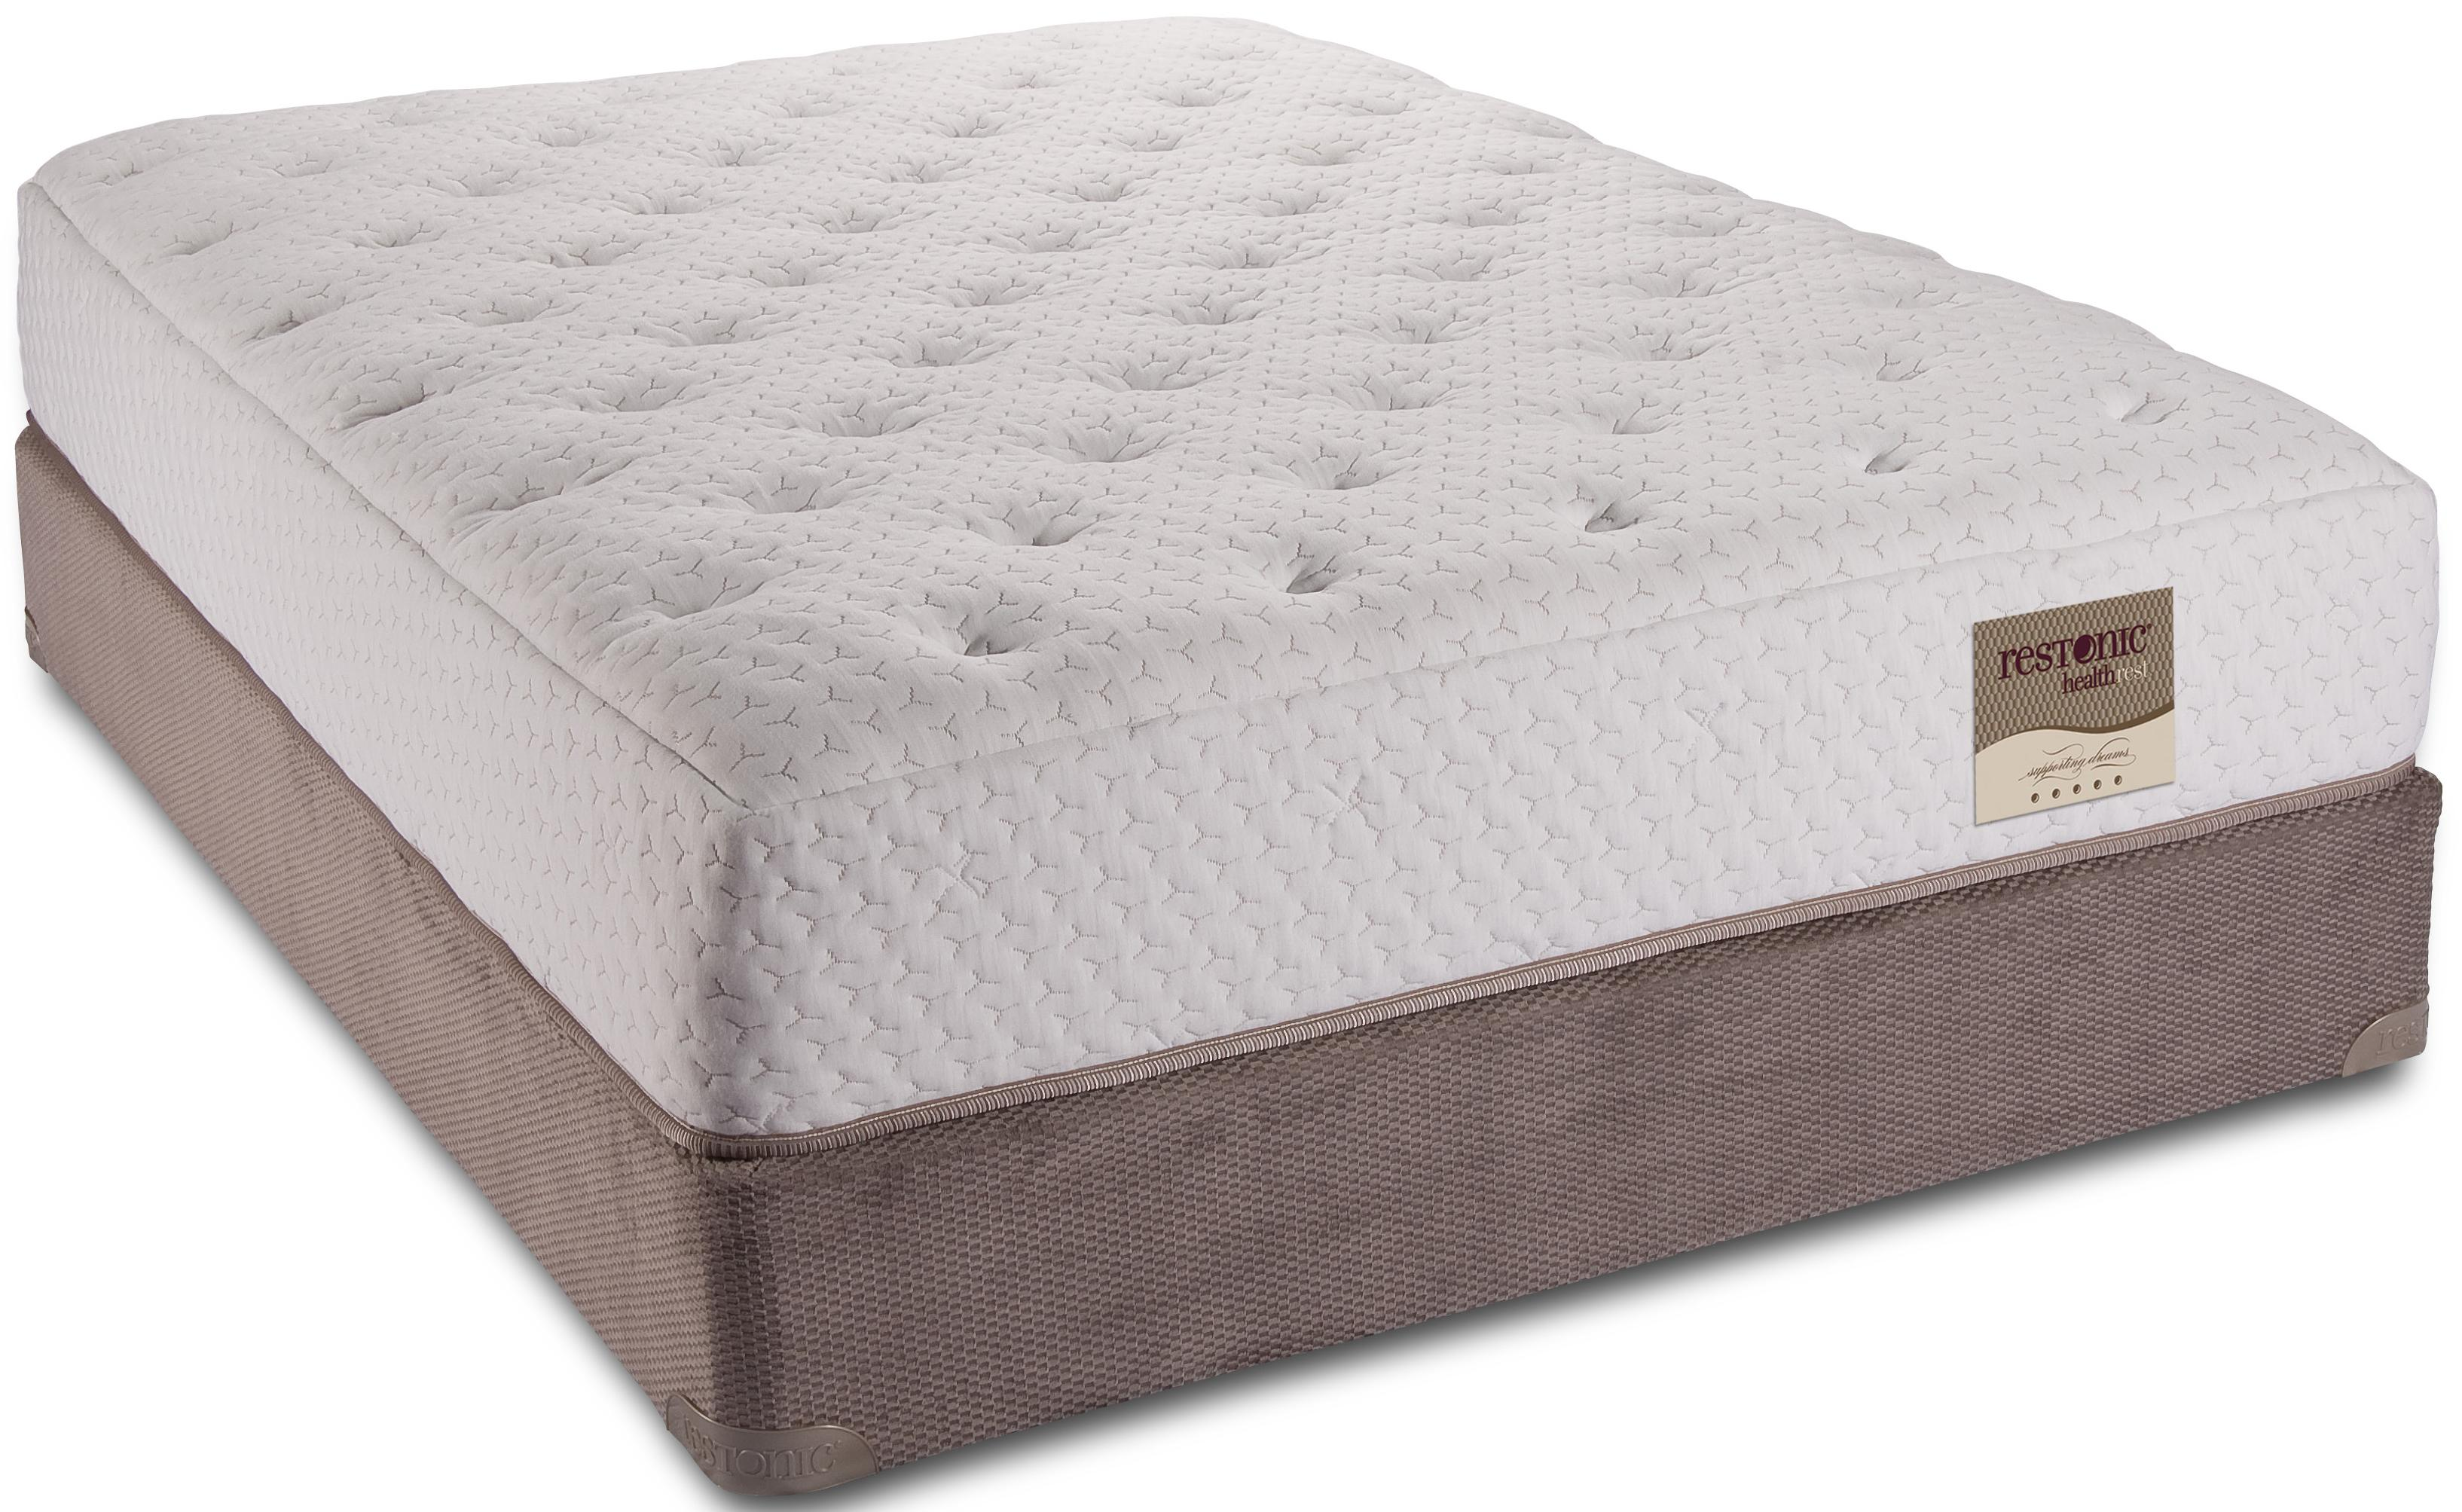 the and to restonic mattress provides disturbance in designed royal unrivaled partner reviews shifts live minimise respond om instantaneously contouring support blog fashionably weight